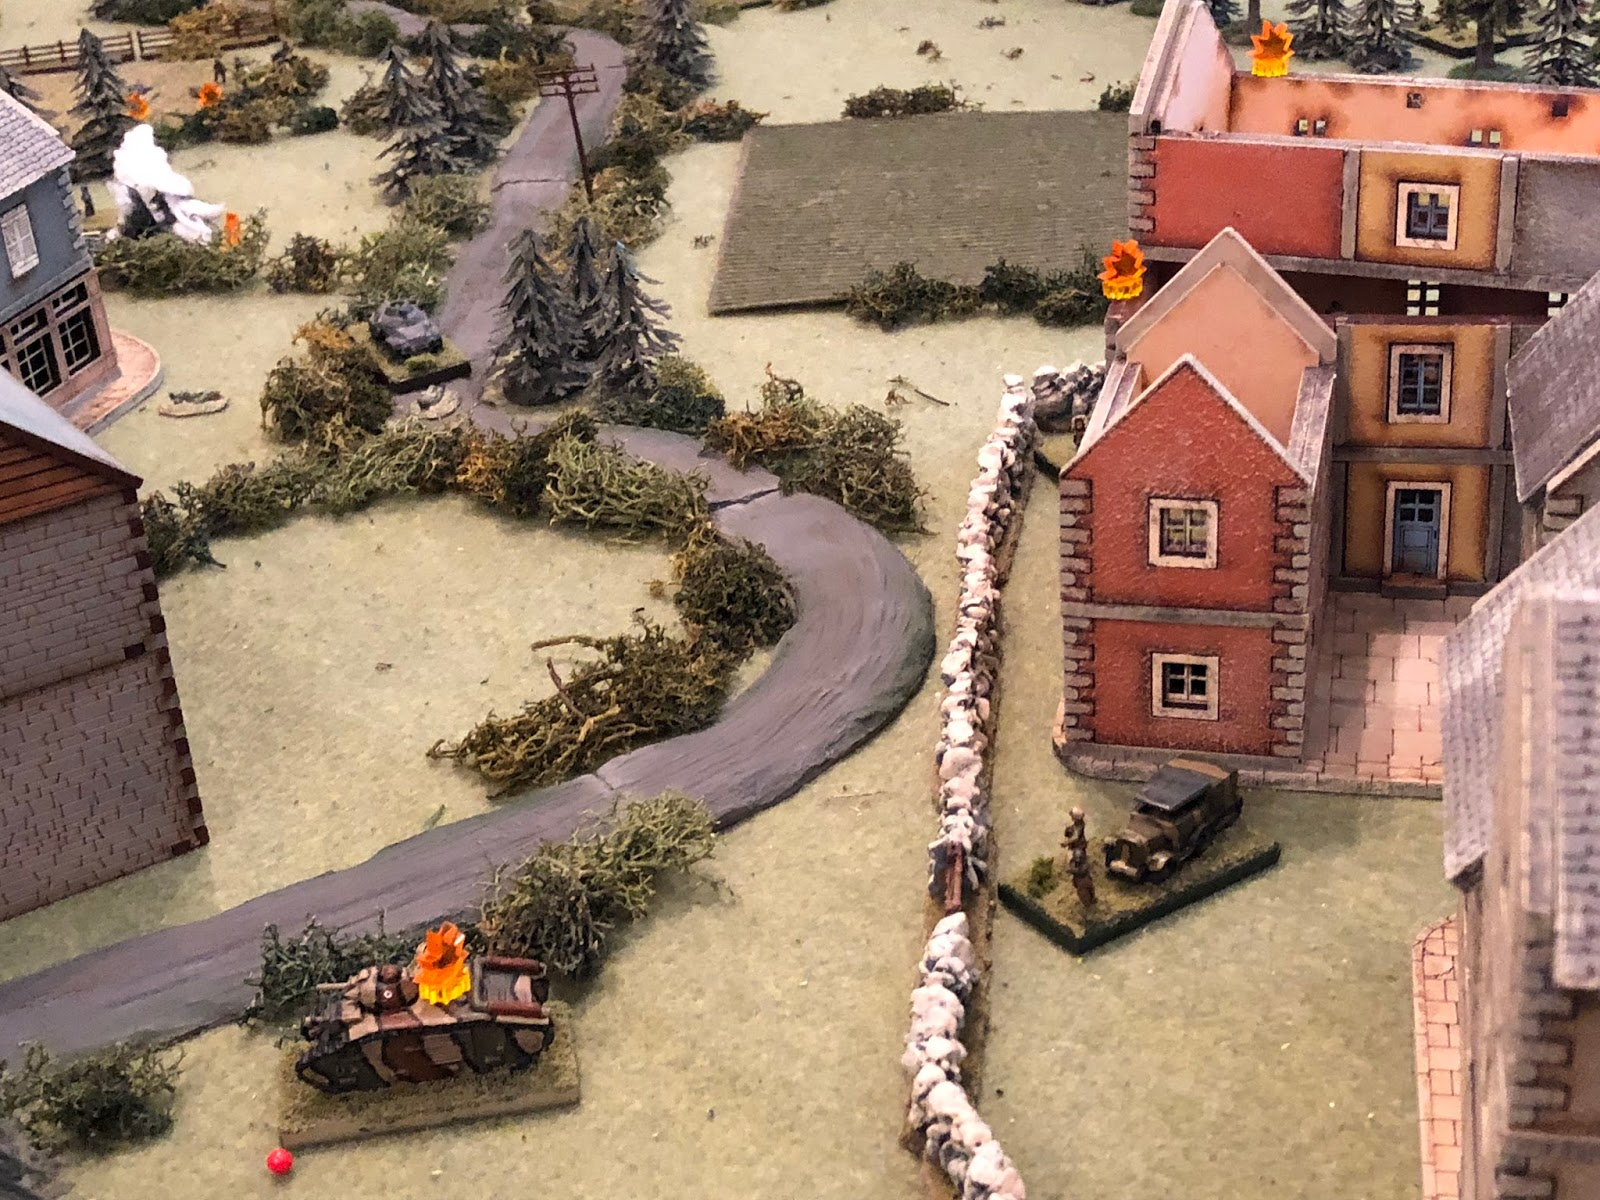 Major Renaut (bottom right) looks on as the German infantry are pounded (top left).  2nd Platoon and the machine gun (top right) are holding strong, the anti-tank gun (behind the buildings at right) is being re-posititioned; I just need to get Sgt Guillaume's crew (bottom left) rallied, and we may just hold, he thinks to himself.  *My boy is complaining aloud about his chances of holding the village, but I'm not feeling so confident myself...